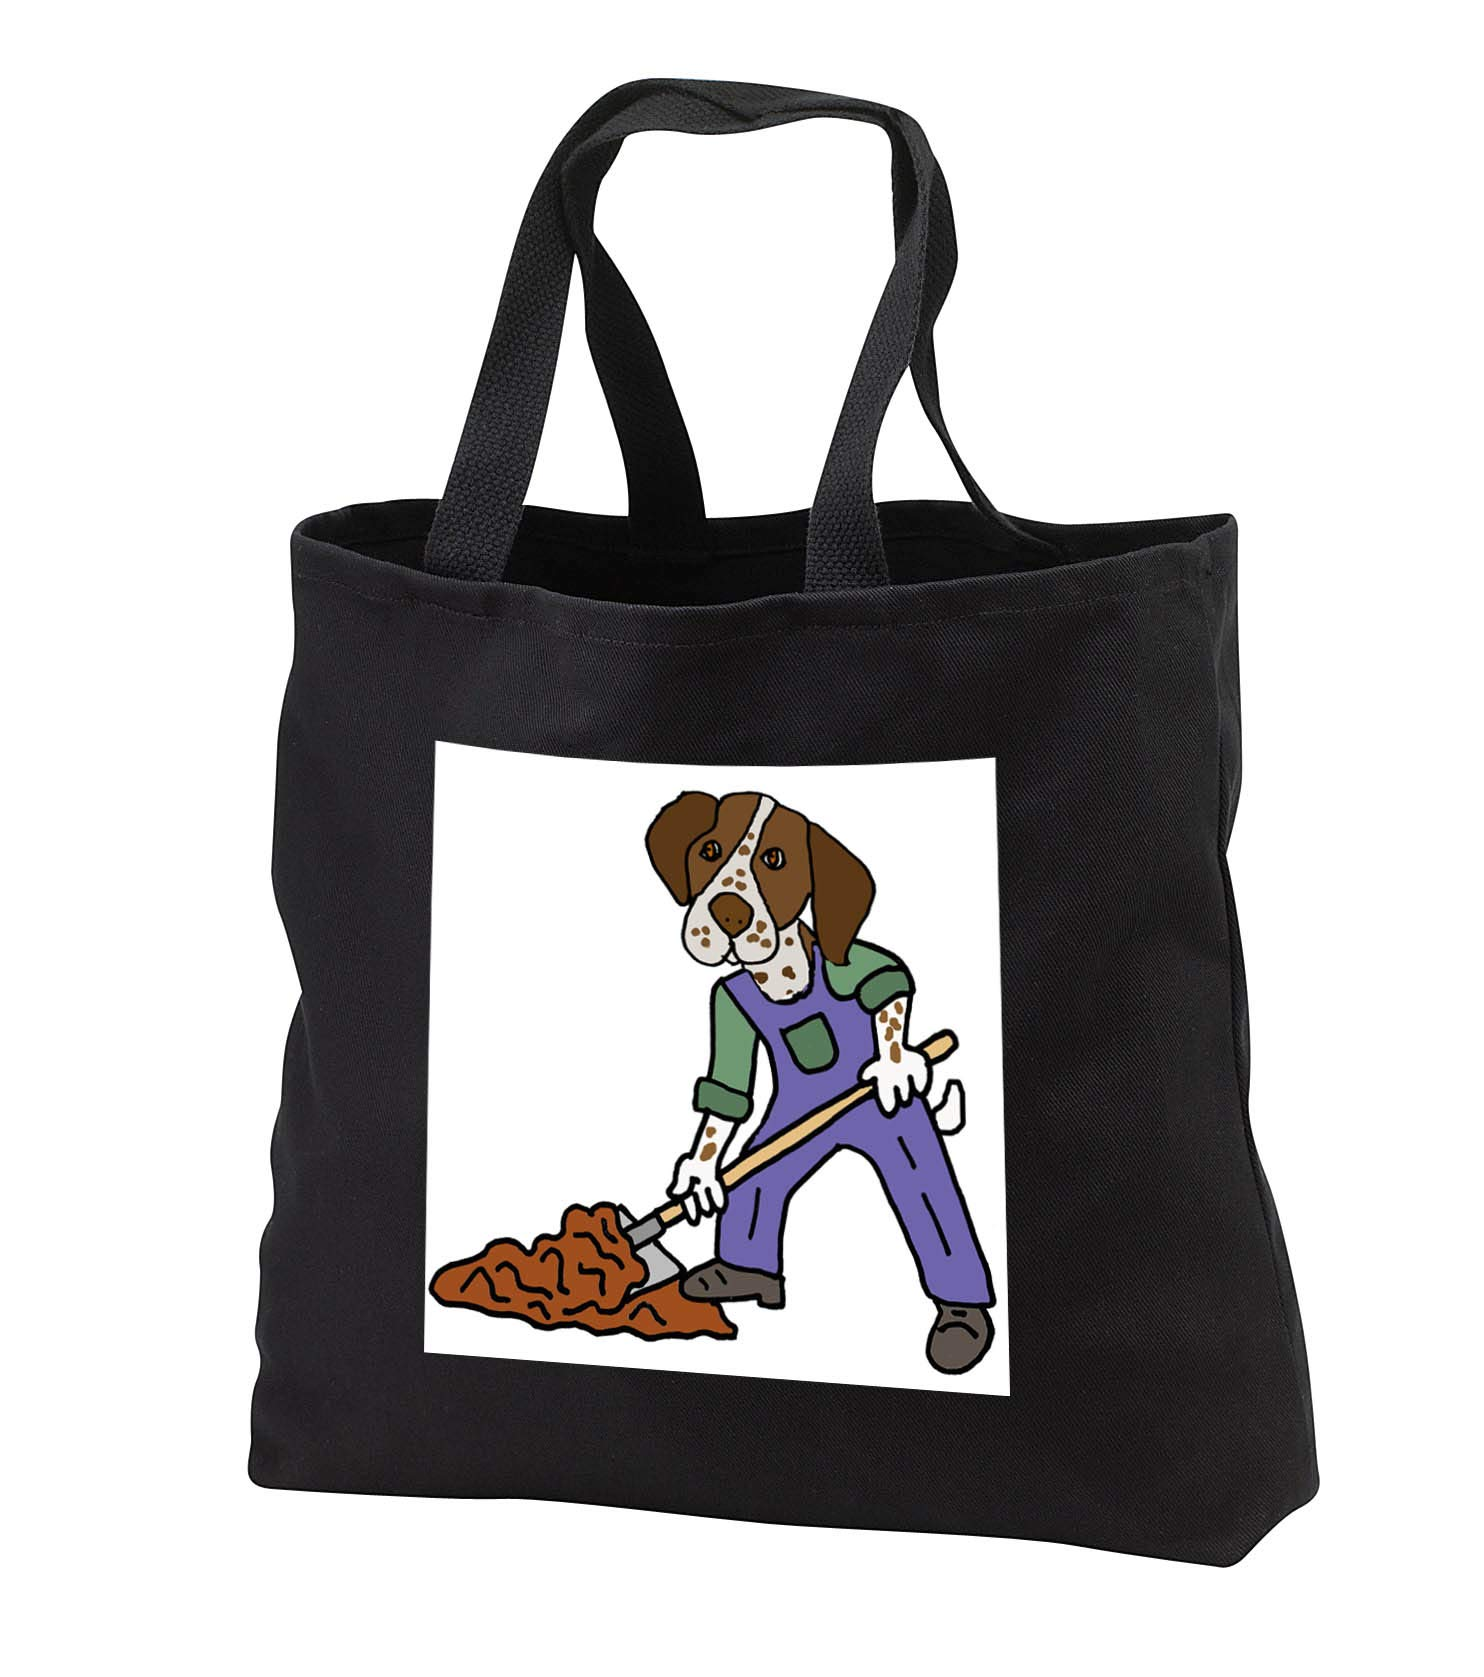 All Smiles Art - Pets - Funny German Short-haired Pointer Dog Digging with Shovel - Tote Bags - Black Tote Bag JUMBO 20w x 15h x 5d (tb_294525_3)